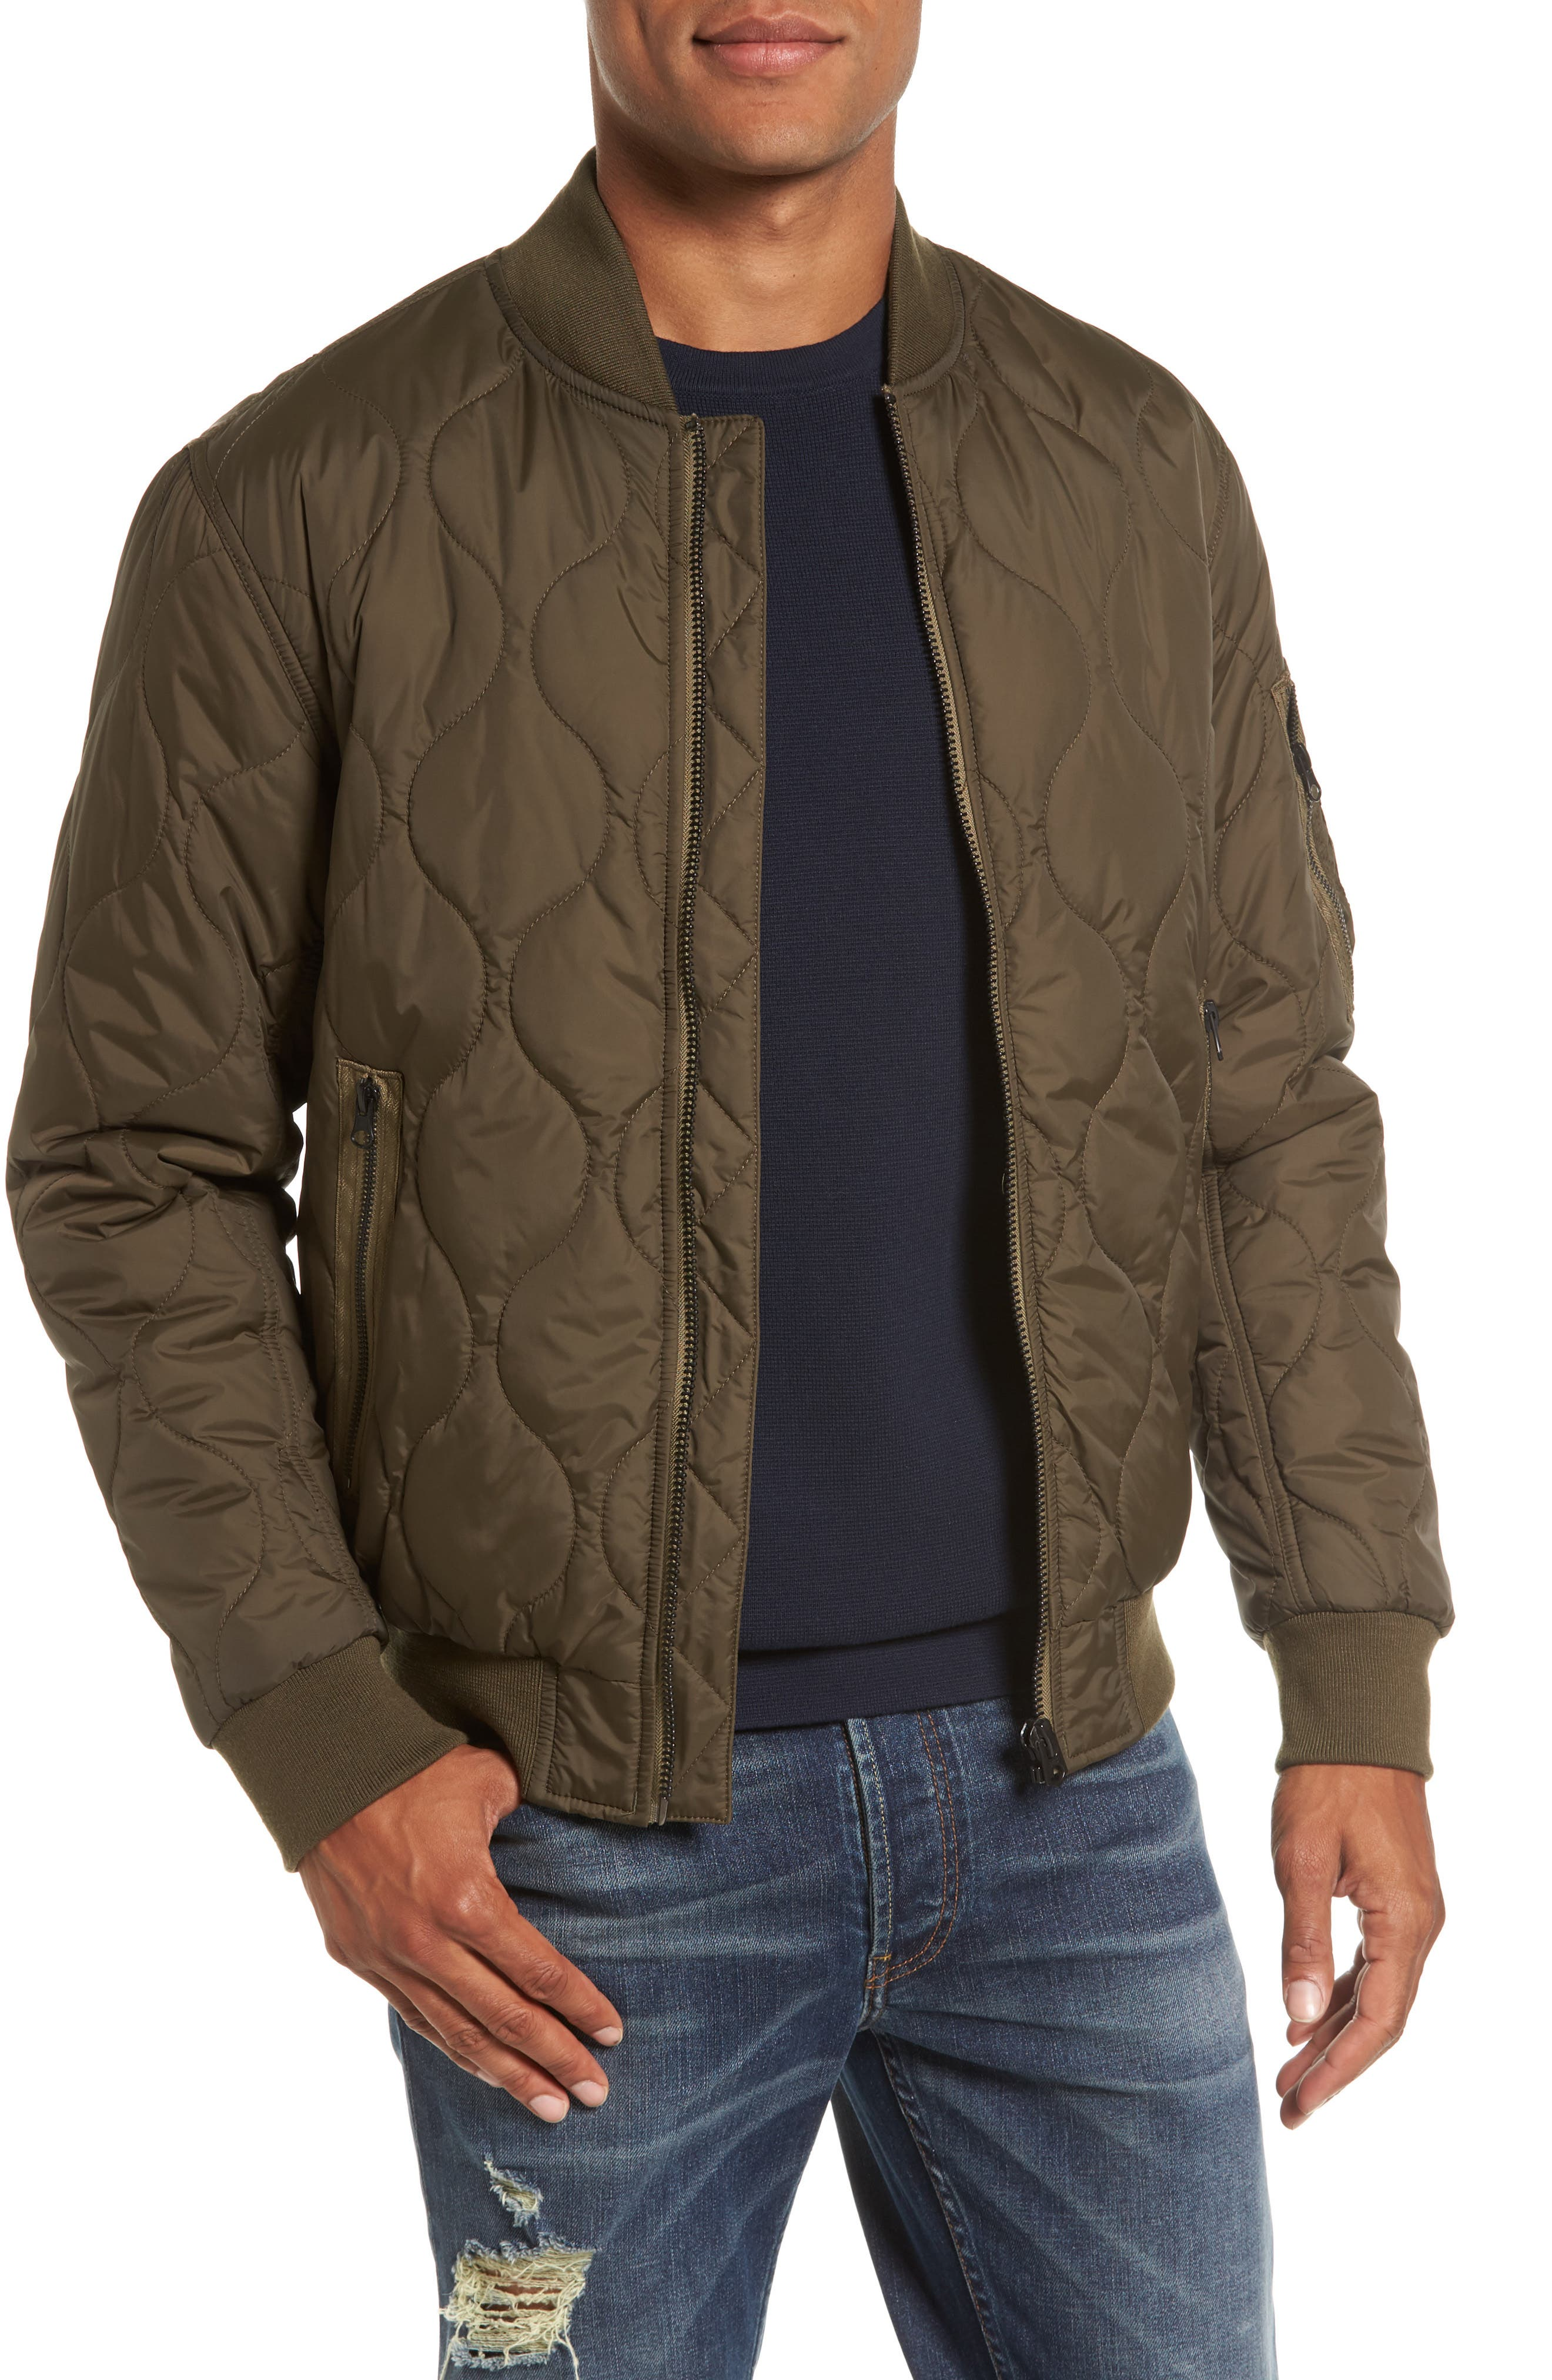 Alternate Image 1 Selected - French Connection Regular Fit Quilted Bomber Jacket